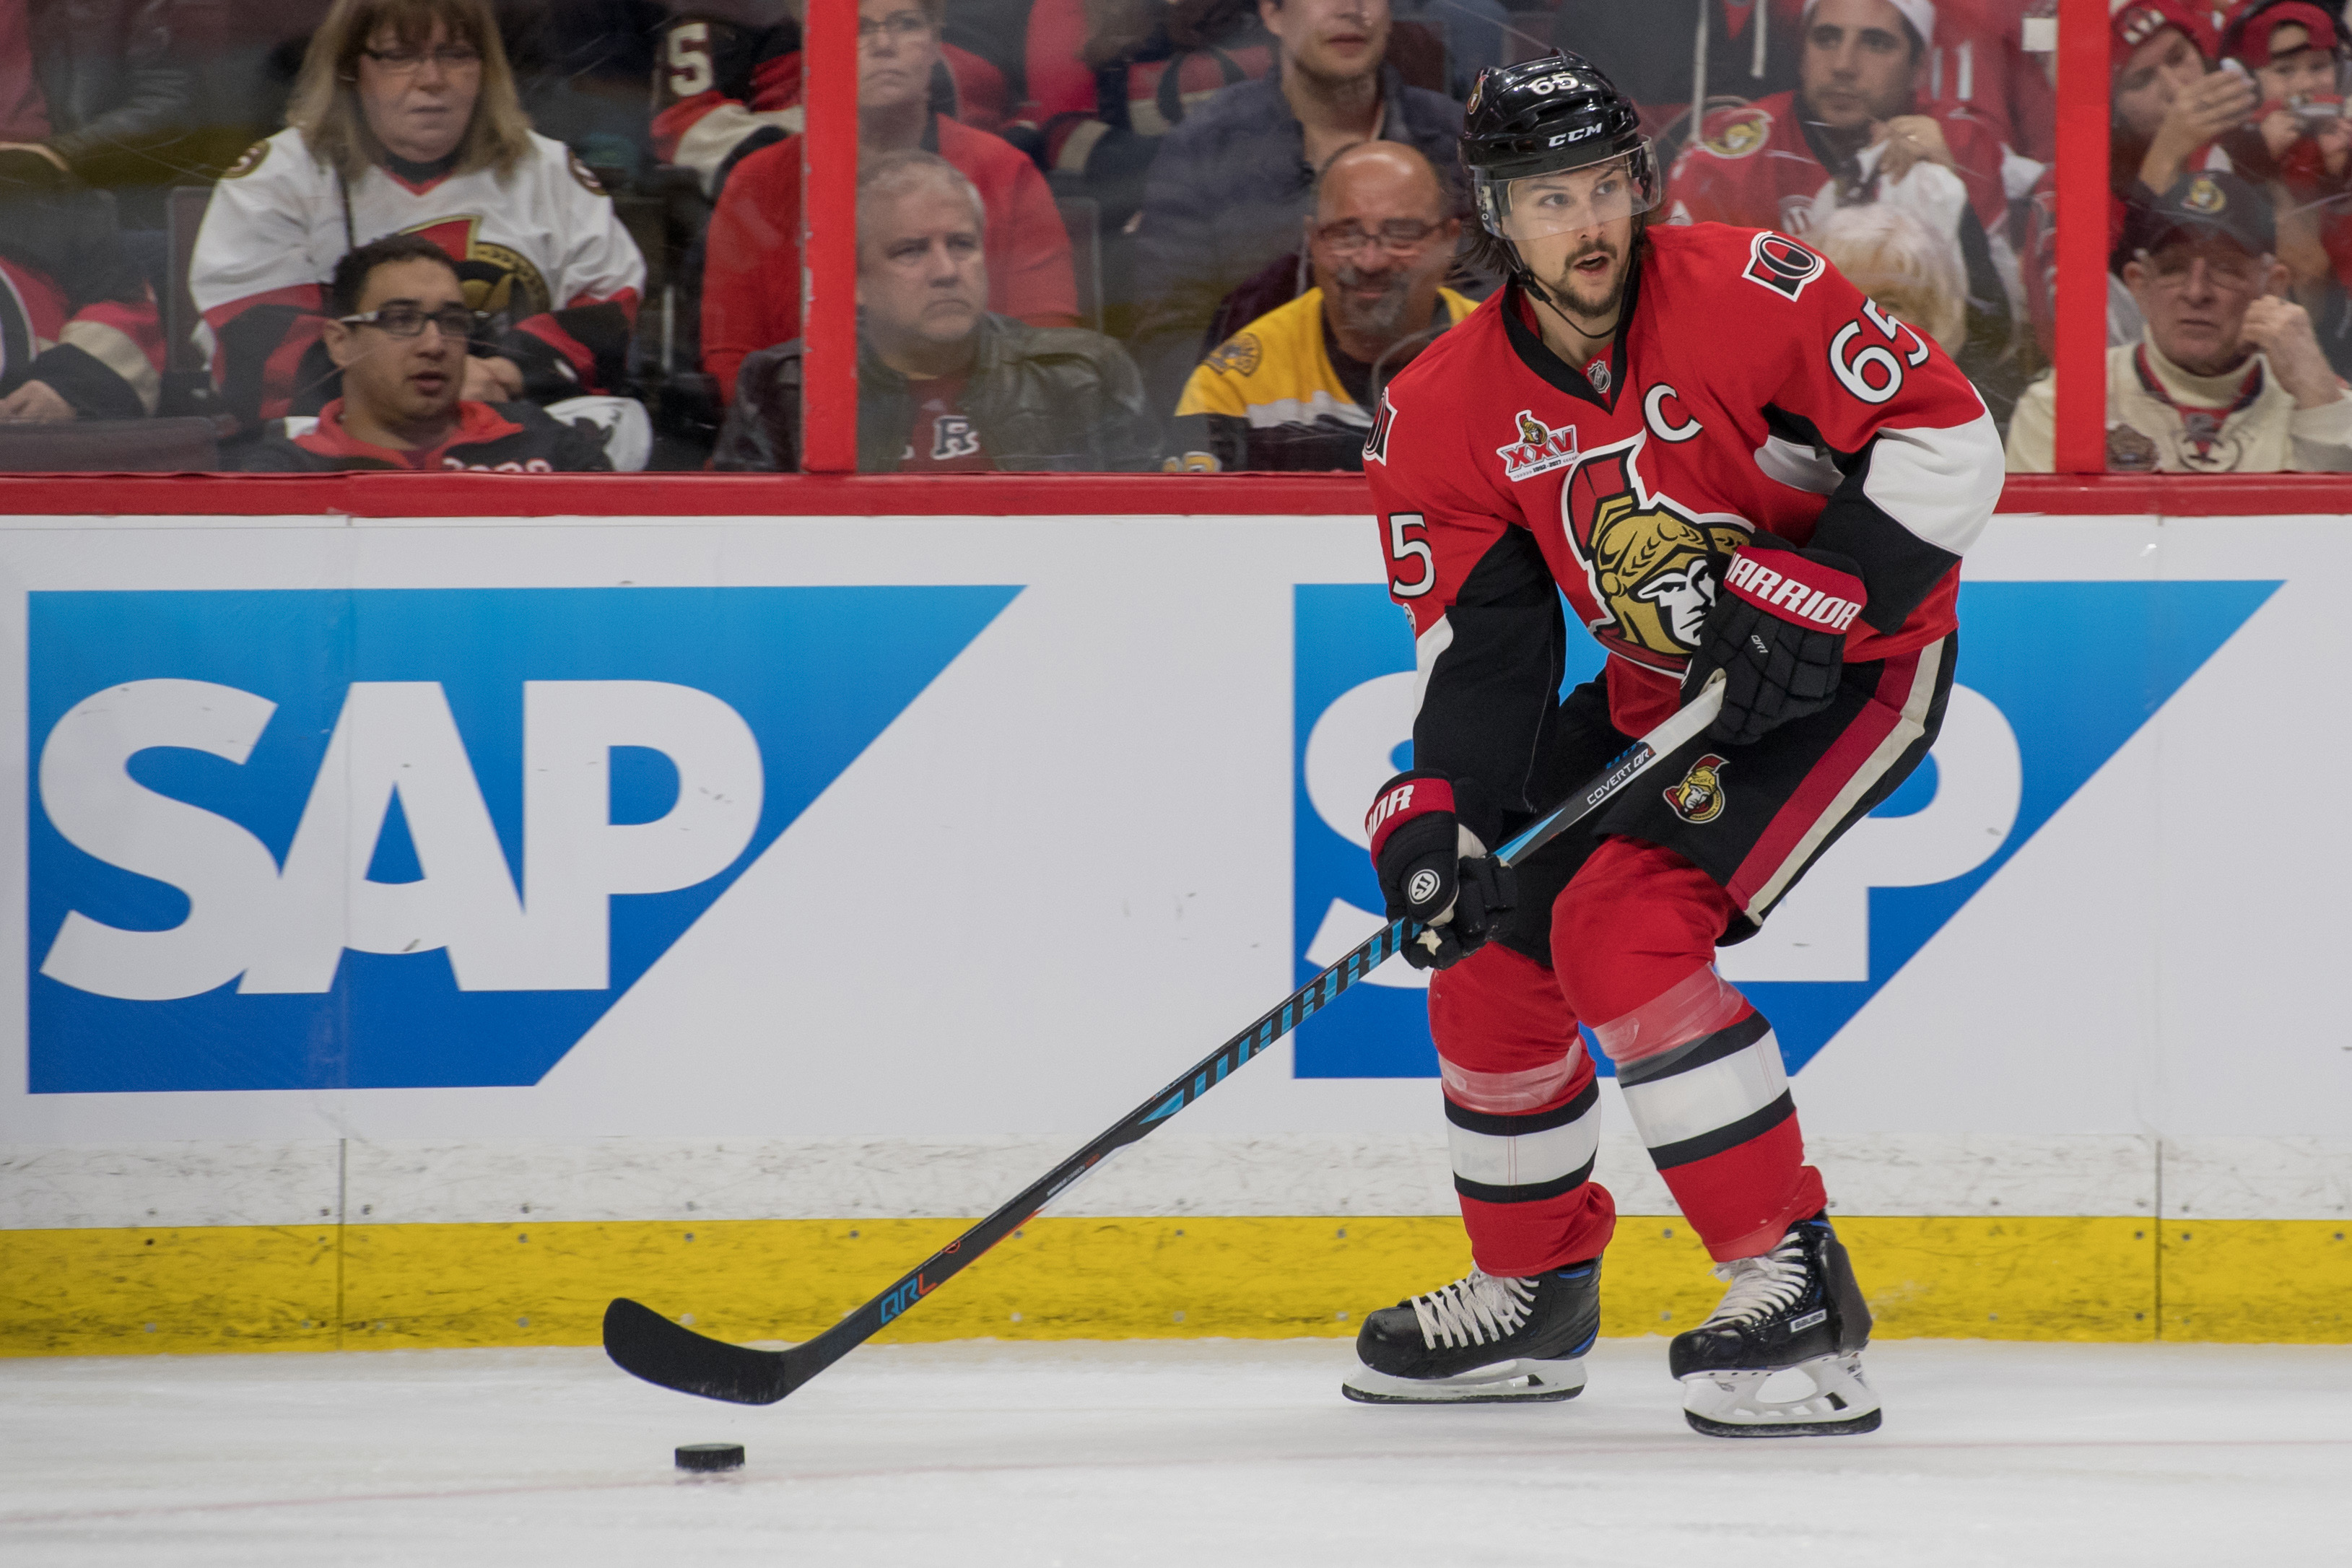 NHL PLAYOFFS: Senators outlast Bruins to take series lead